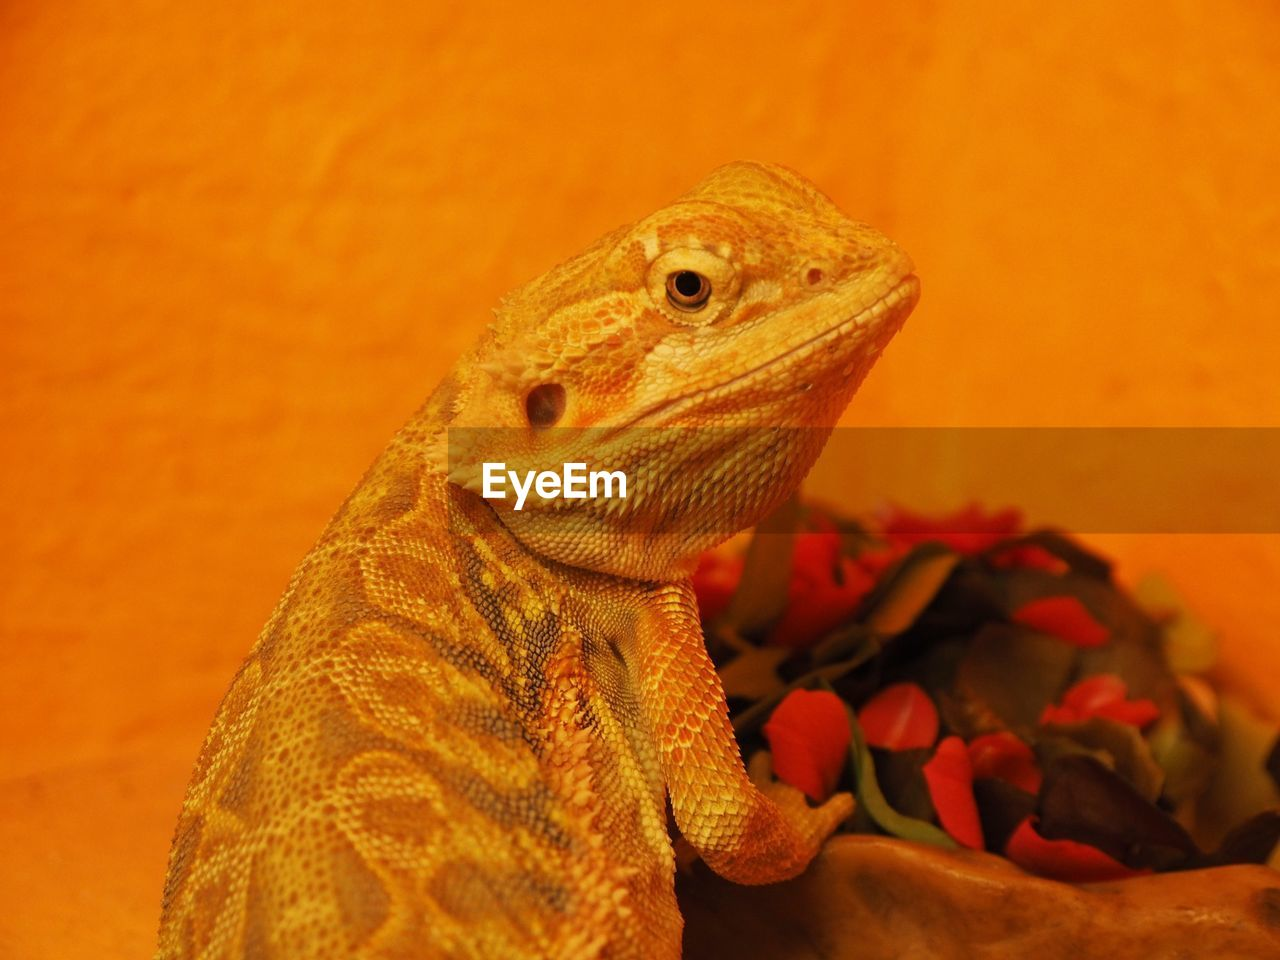 one animal, vertebrate, animal, animal themes, reptile, animals in the wild, close-up, animal wildlife, lizard, orange color, no people, nature, focus on foreground, flower, animal body part, bearded dragon, flowering plant, indoors, animal head, beauty in nature, animal scale